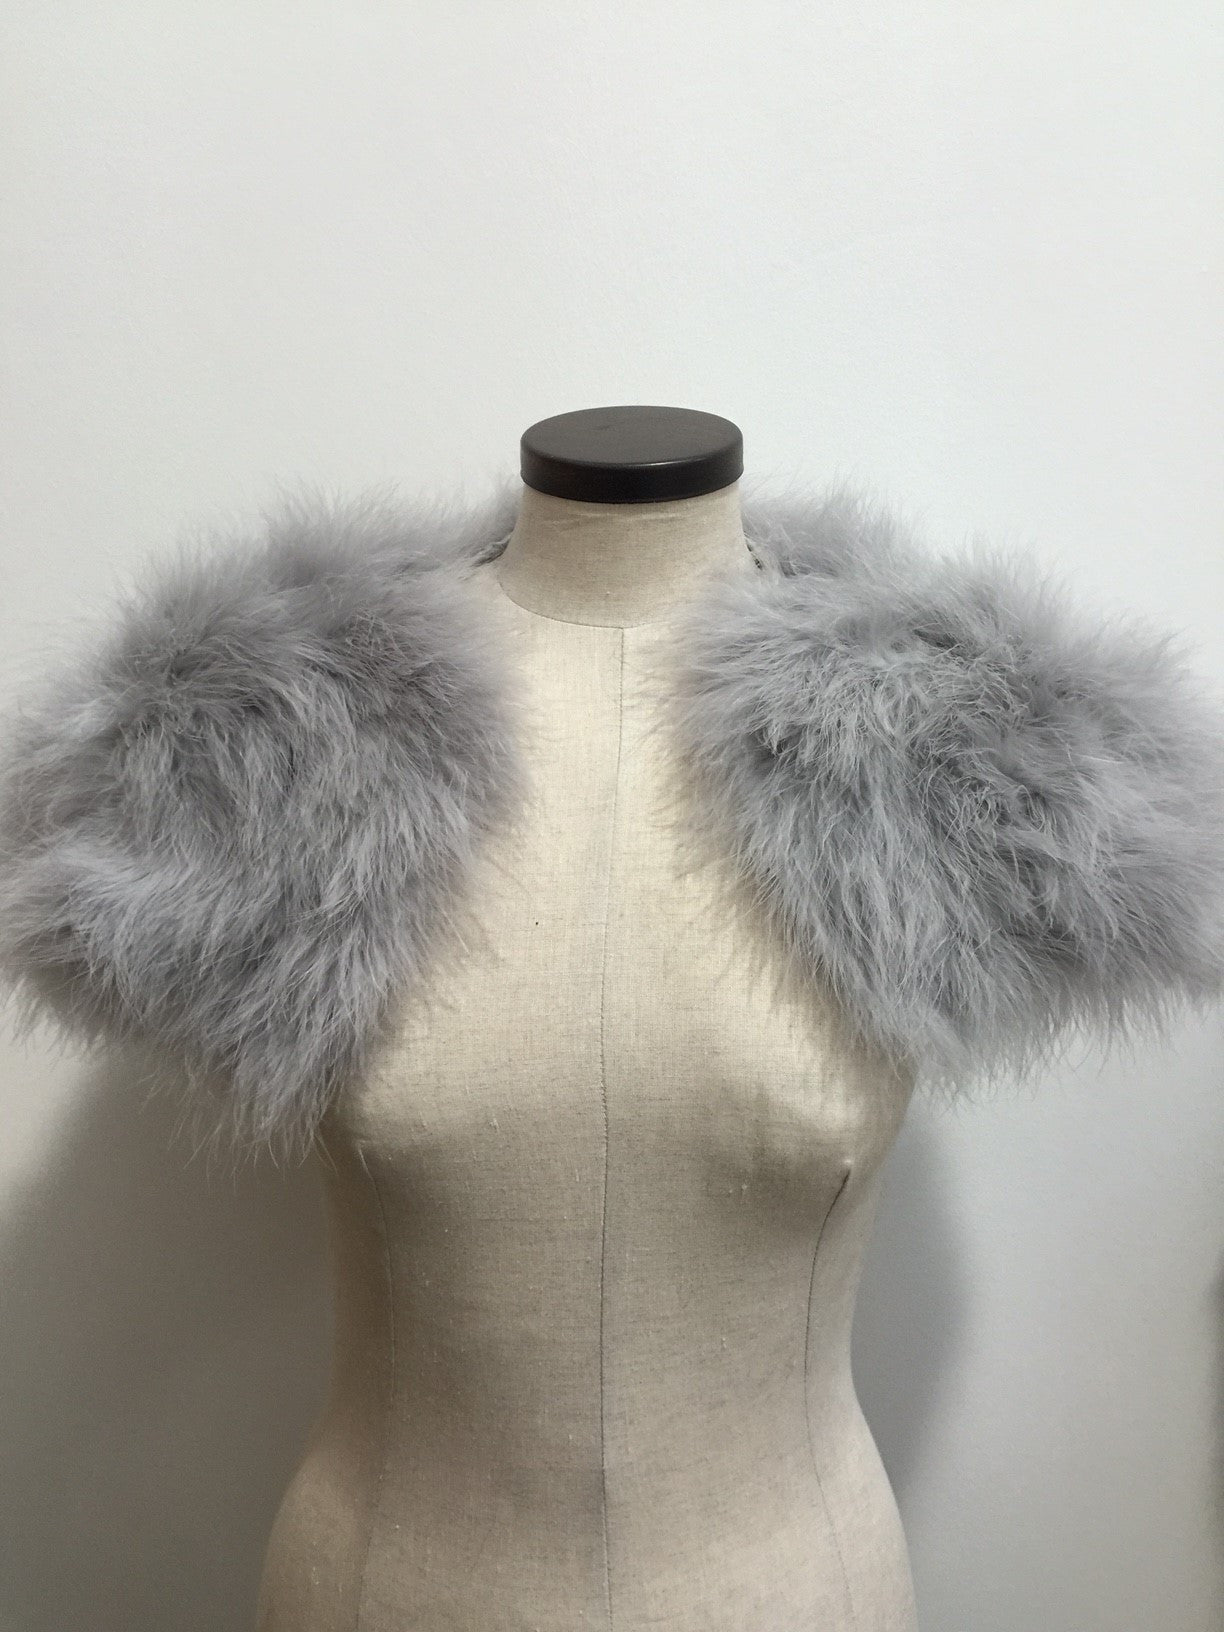 xFeather Shrug in Silver - The Soho Furrier